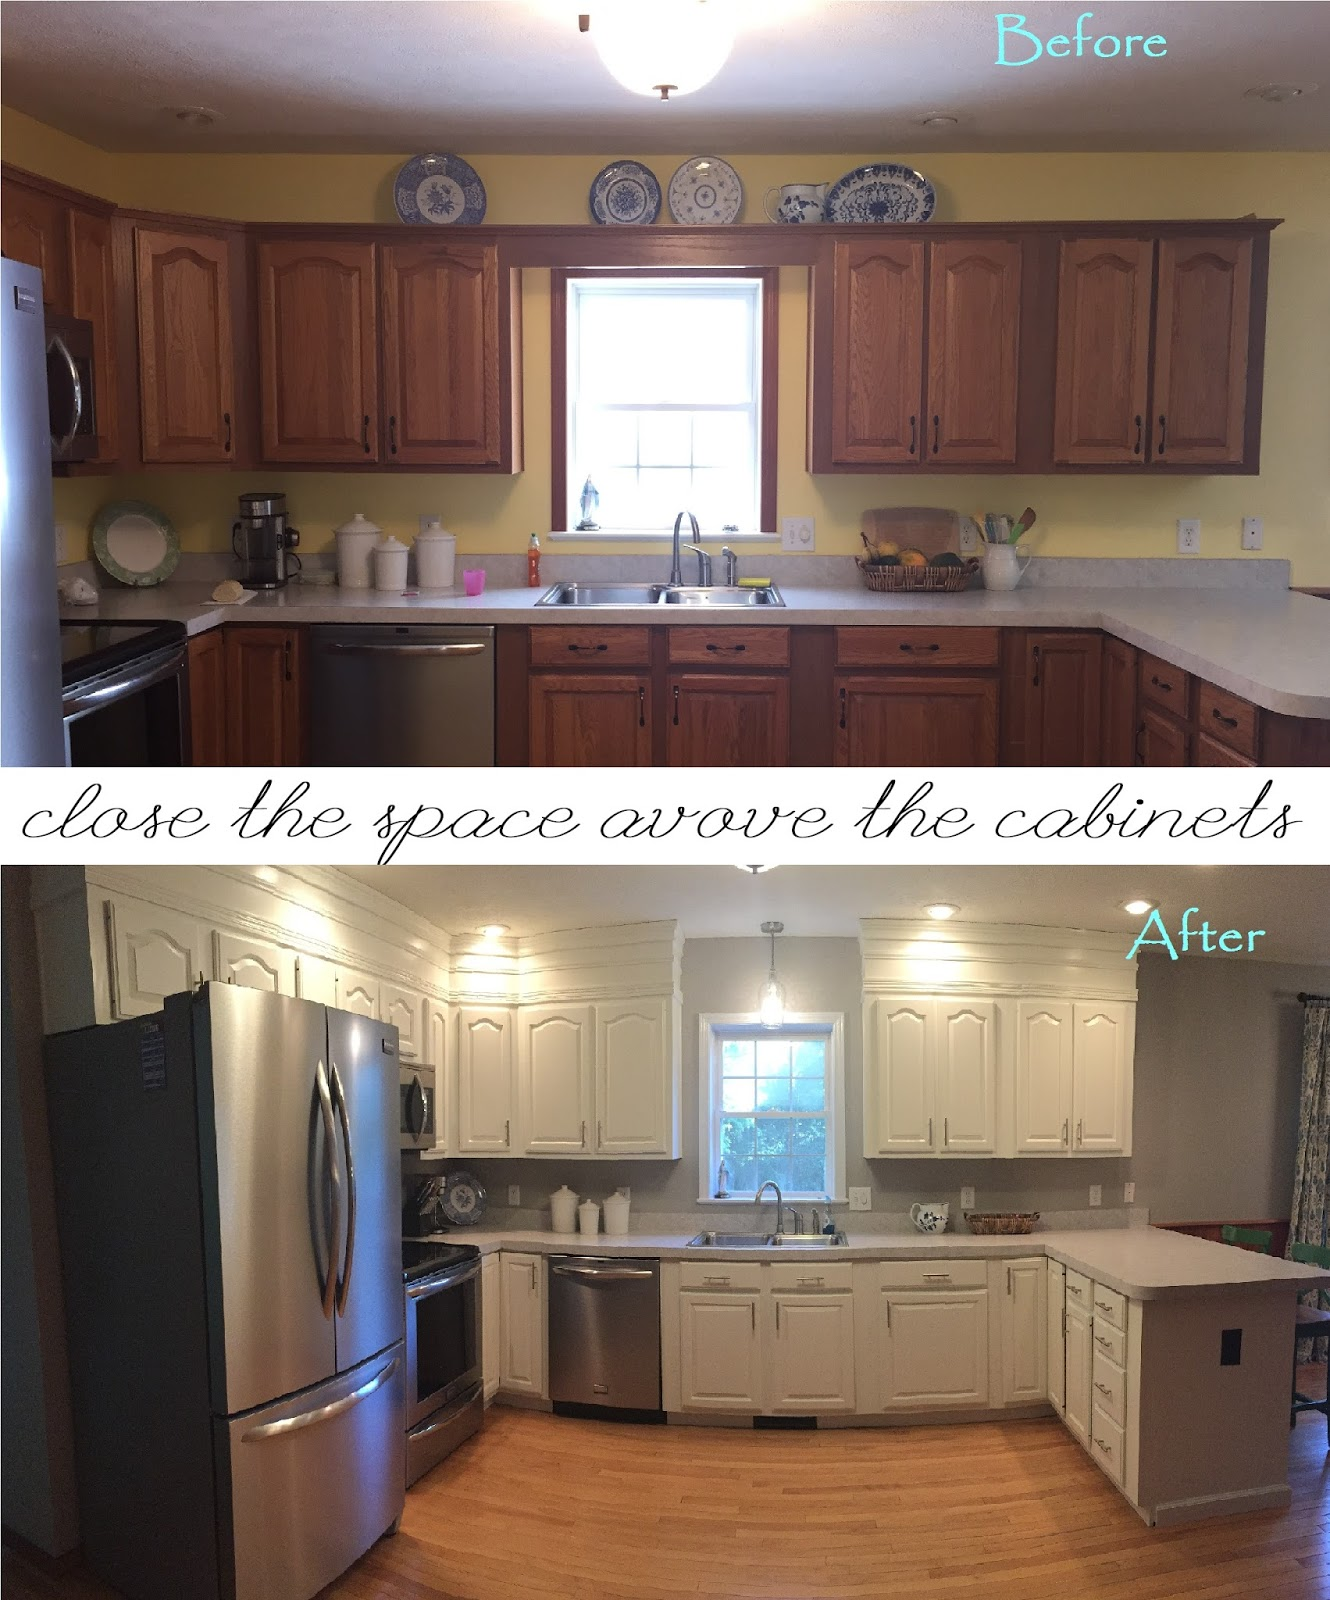 Space Above Kitchen Cabinets: Windingwood: Closing The Space Above The Kitchen Cabinets